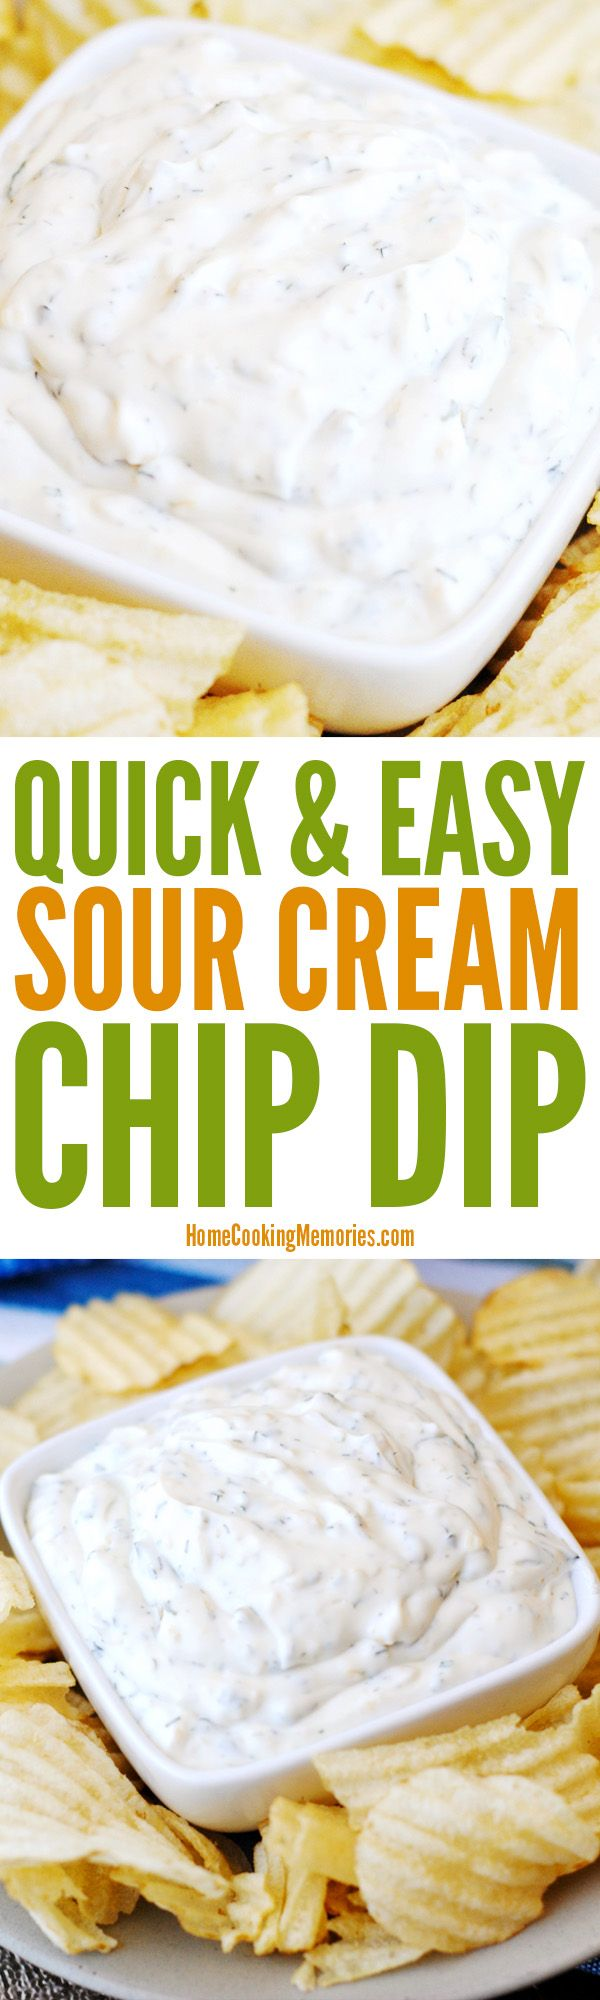 Homemade Sour Cream Chip Dip